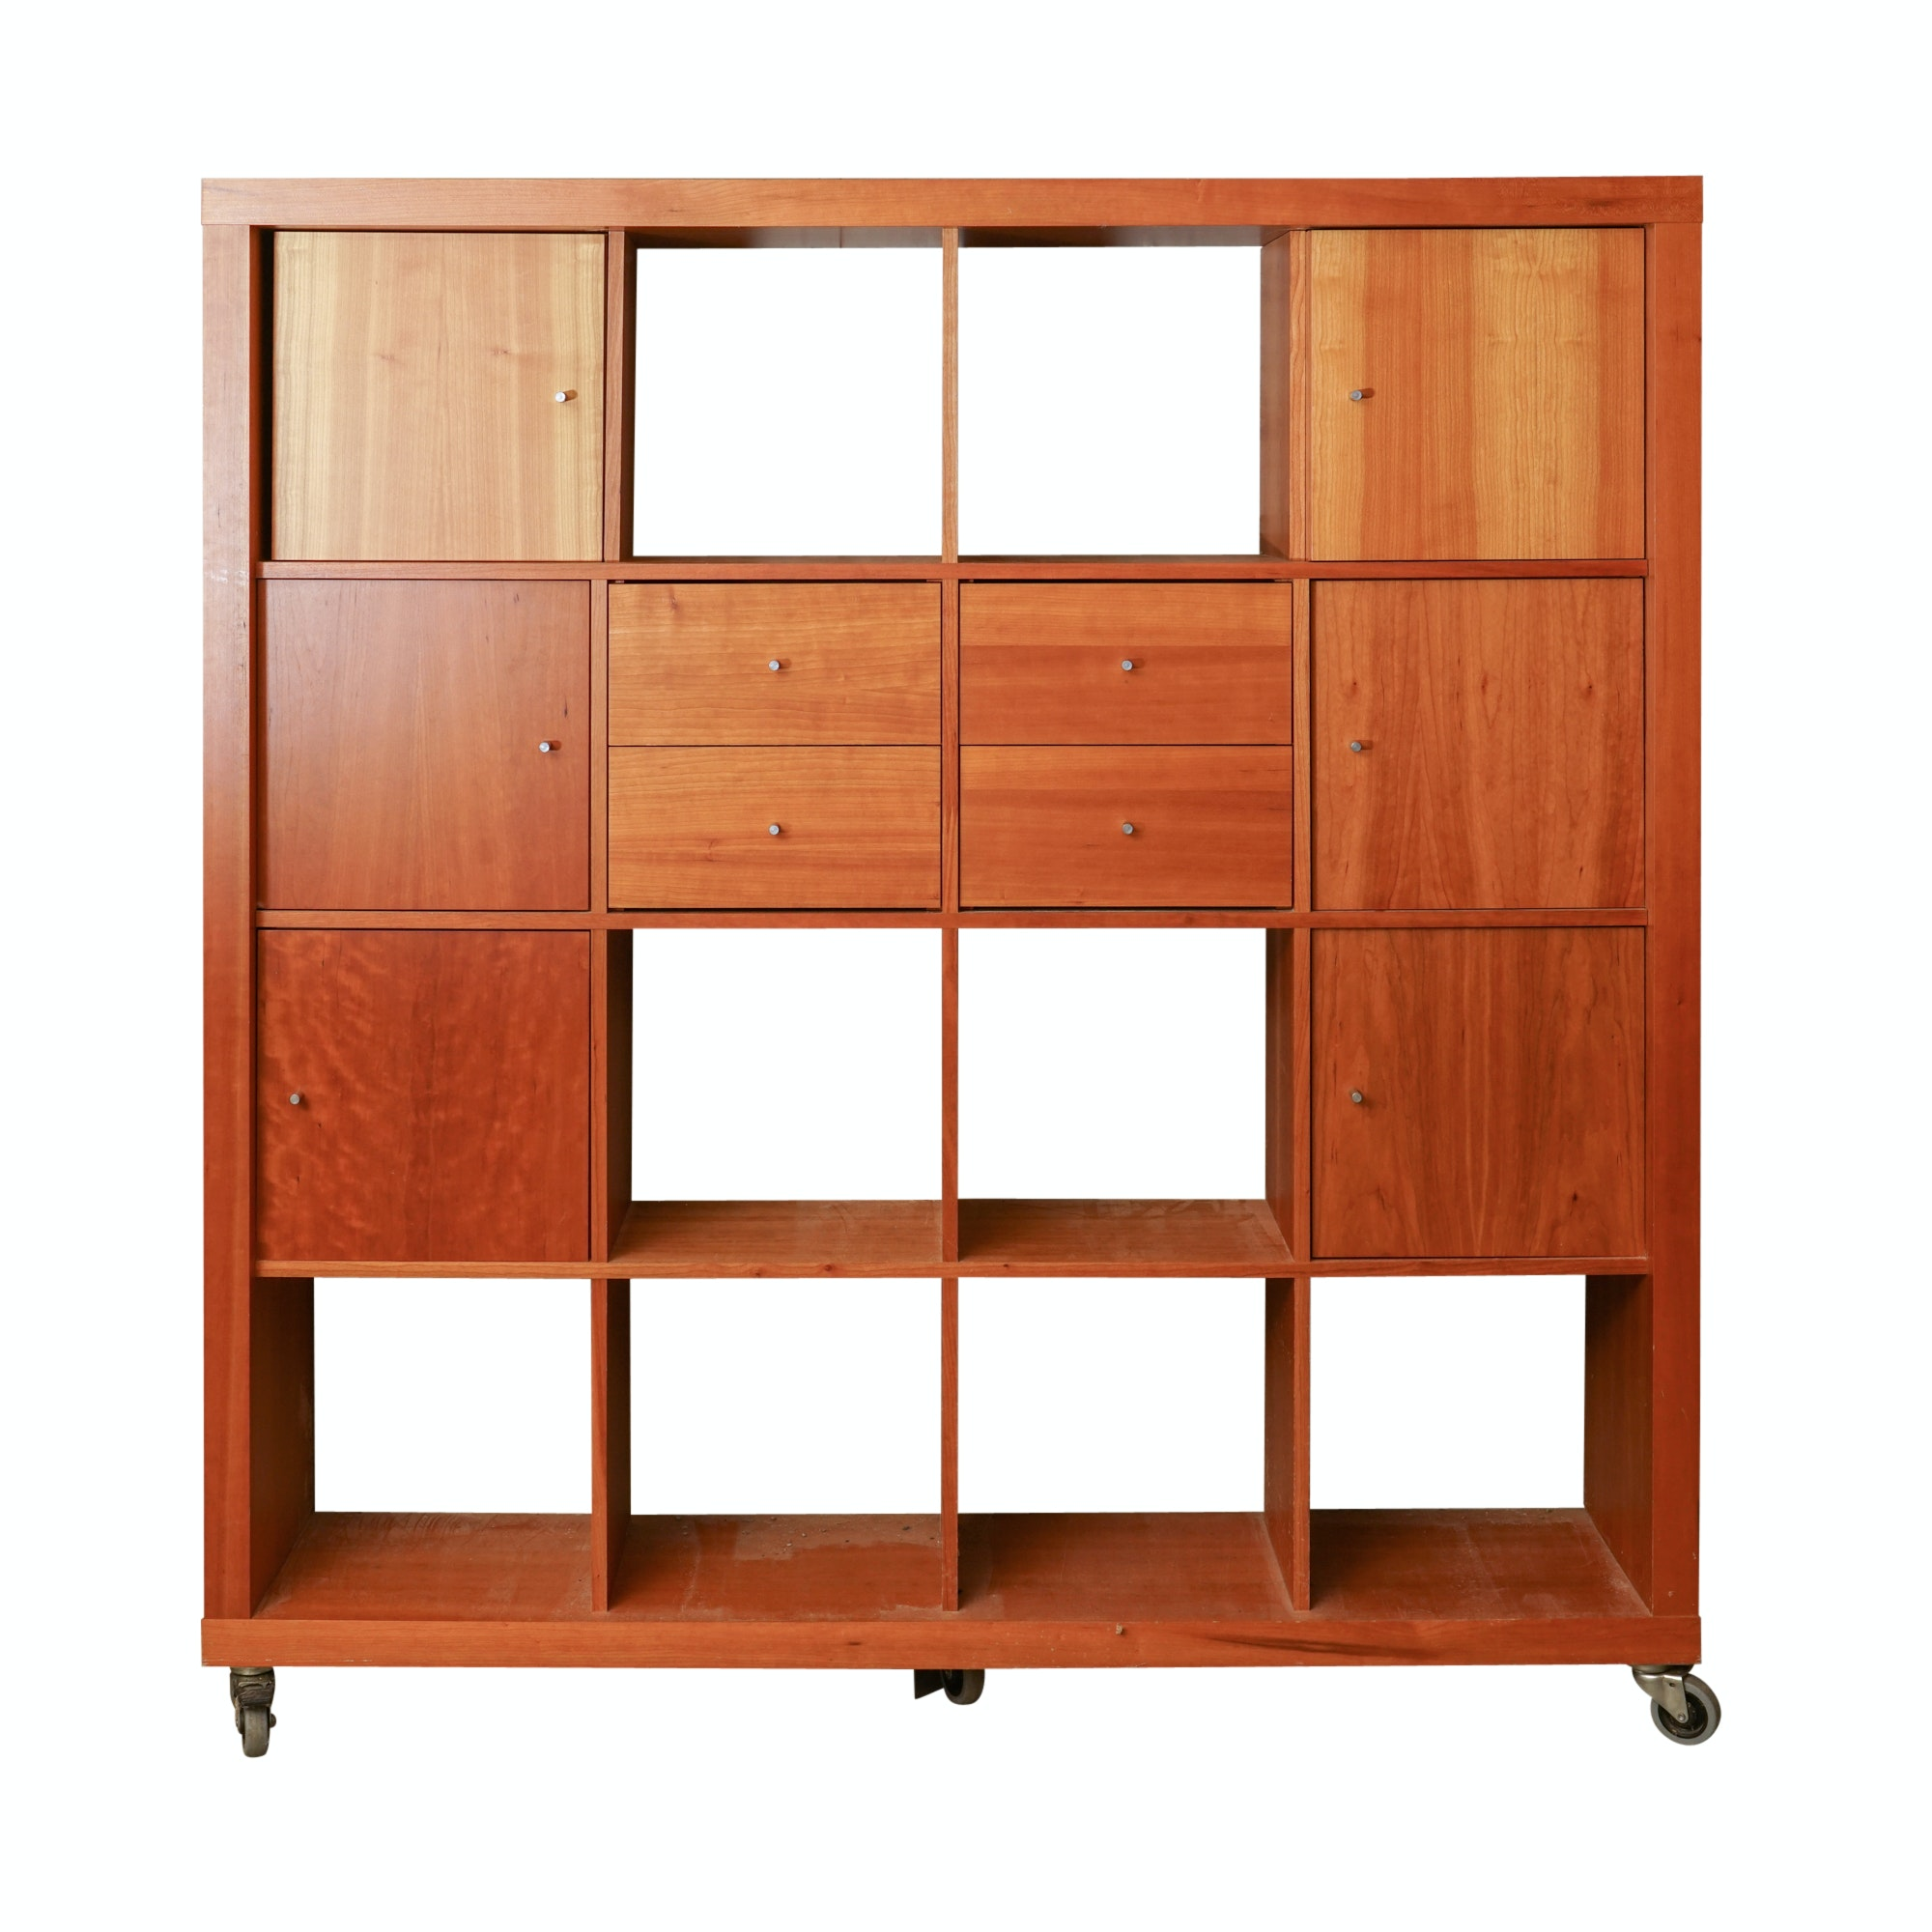 Contemporary Wood Room Divider Cabinet